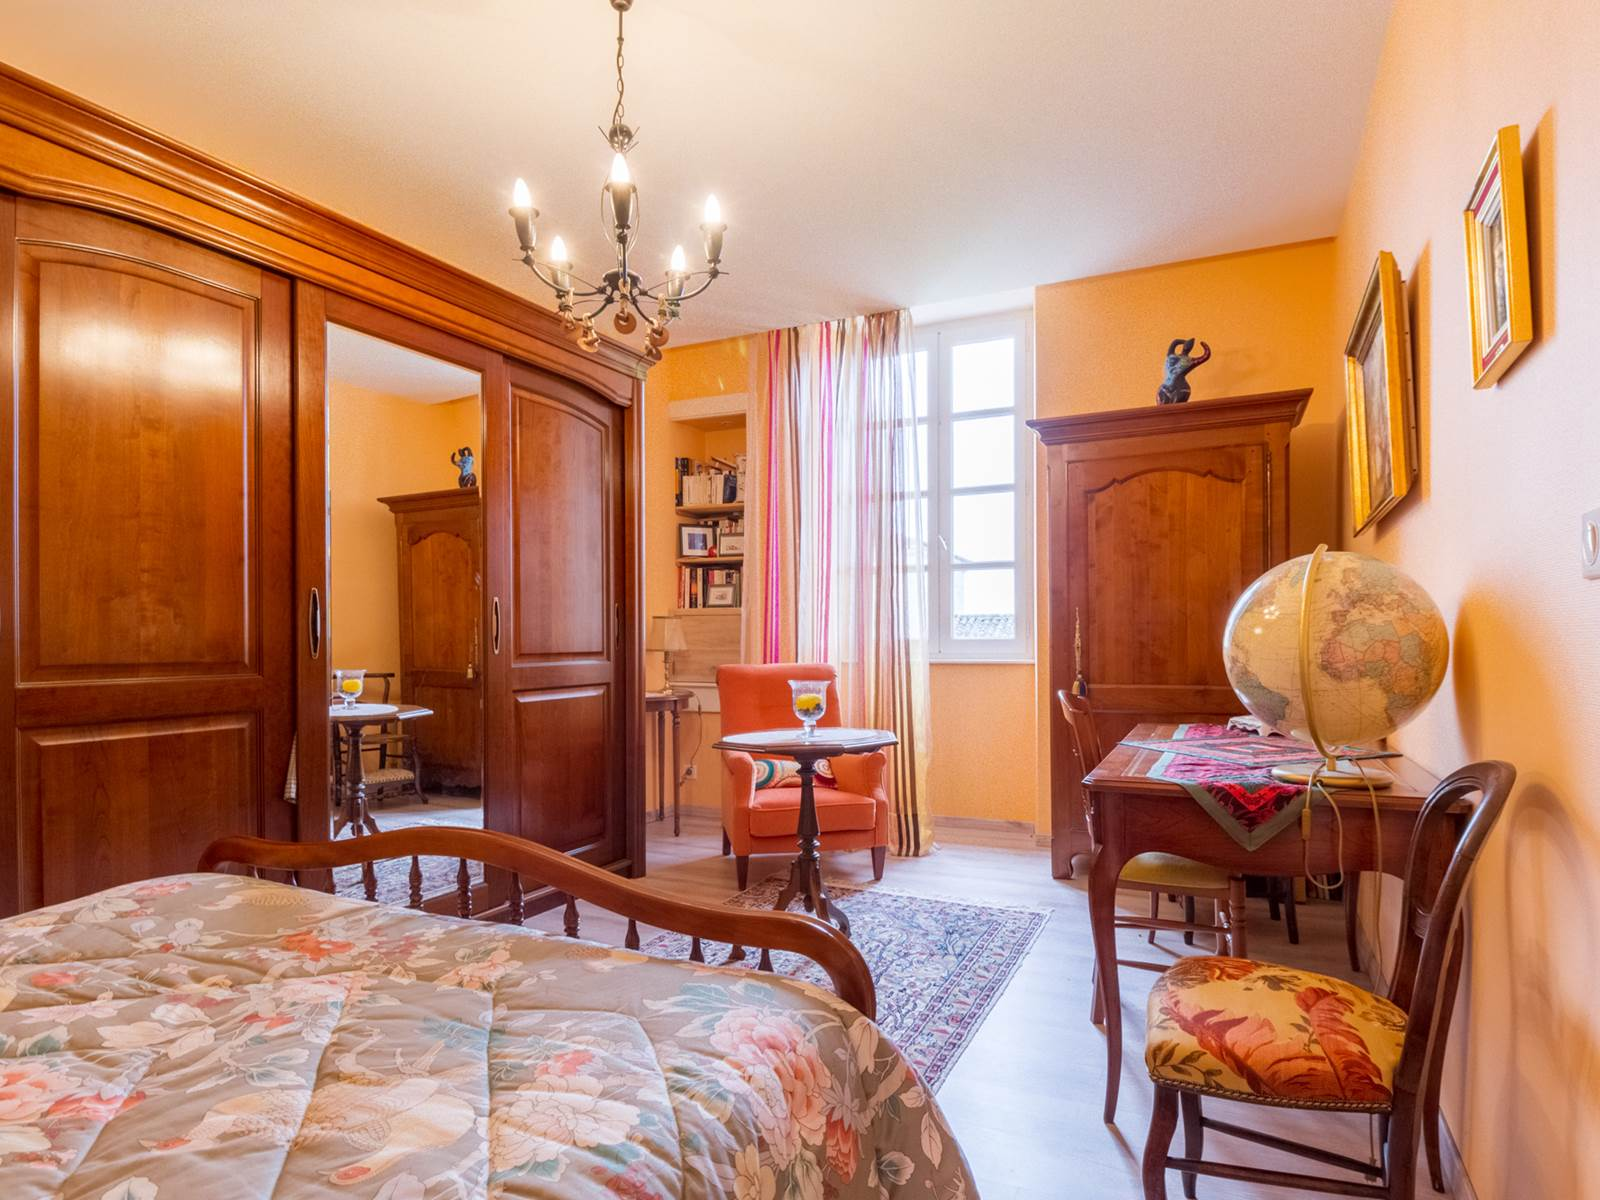 Saint Roch chambre orange.jpg